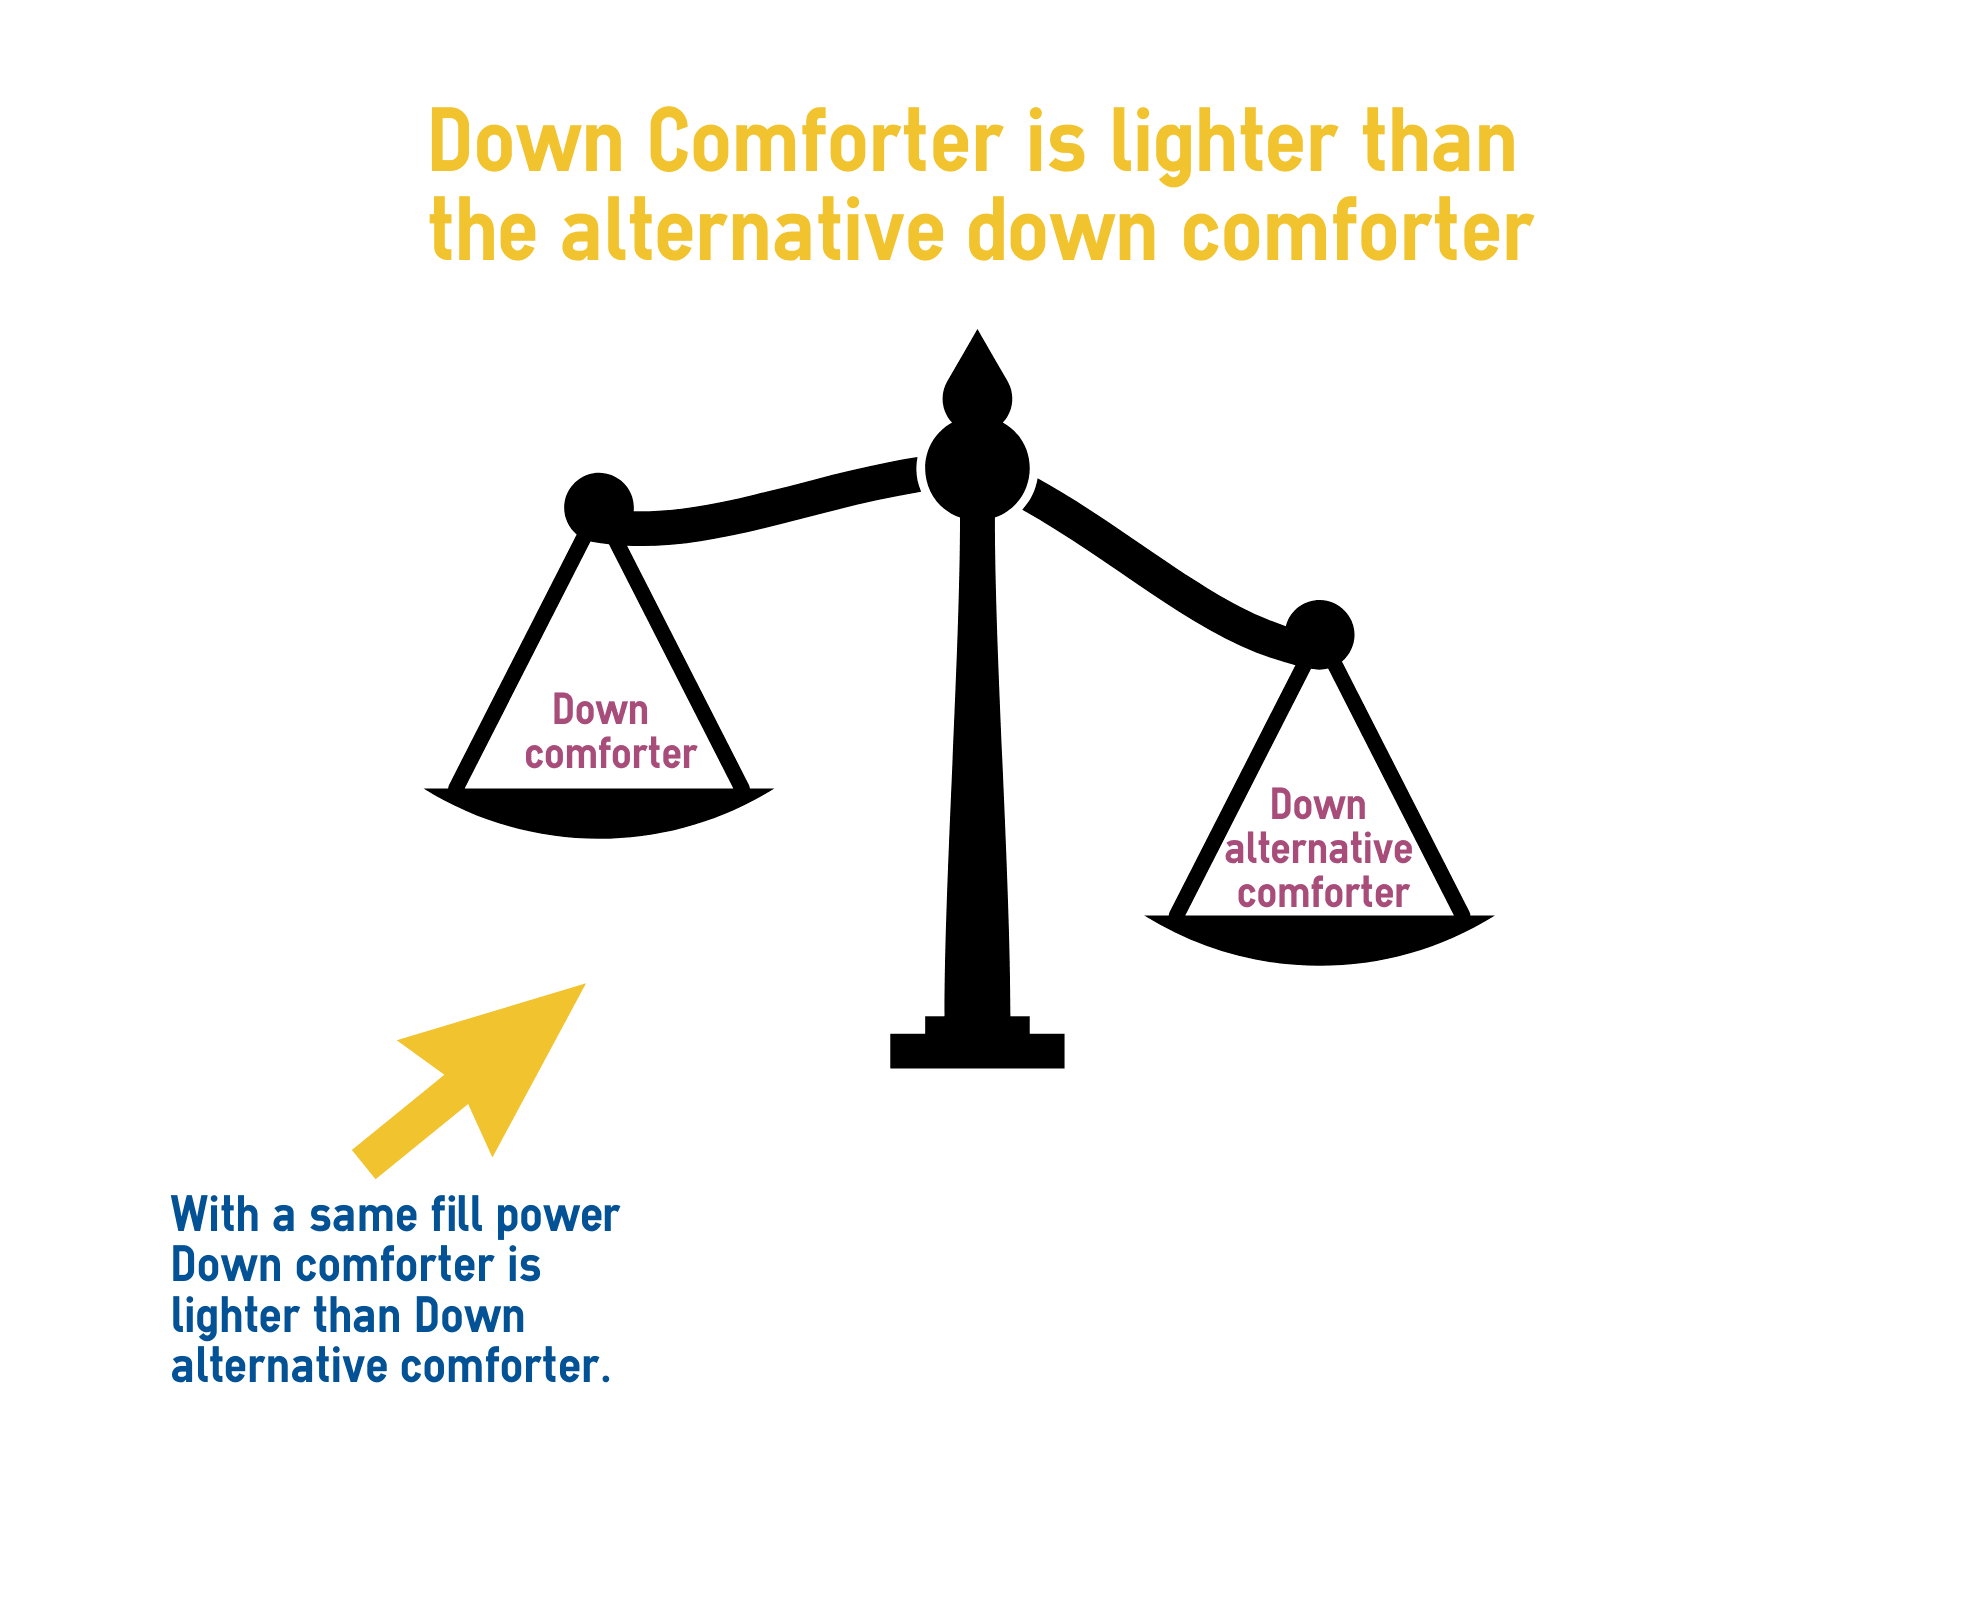 Down comforter is lighter than down alternative